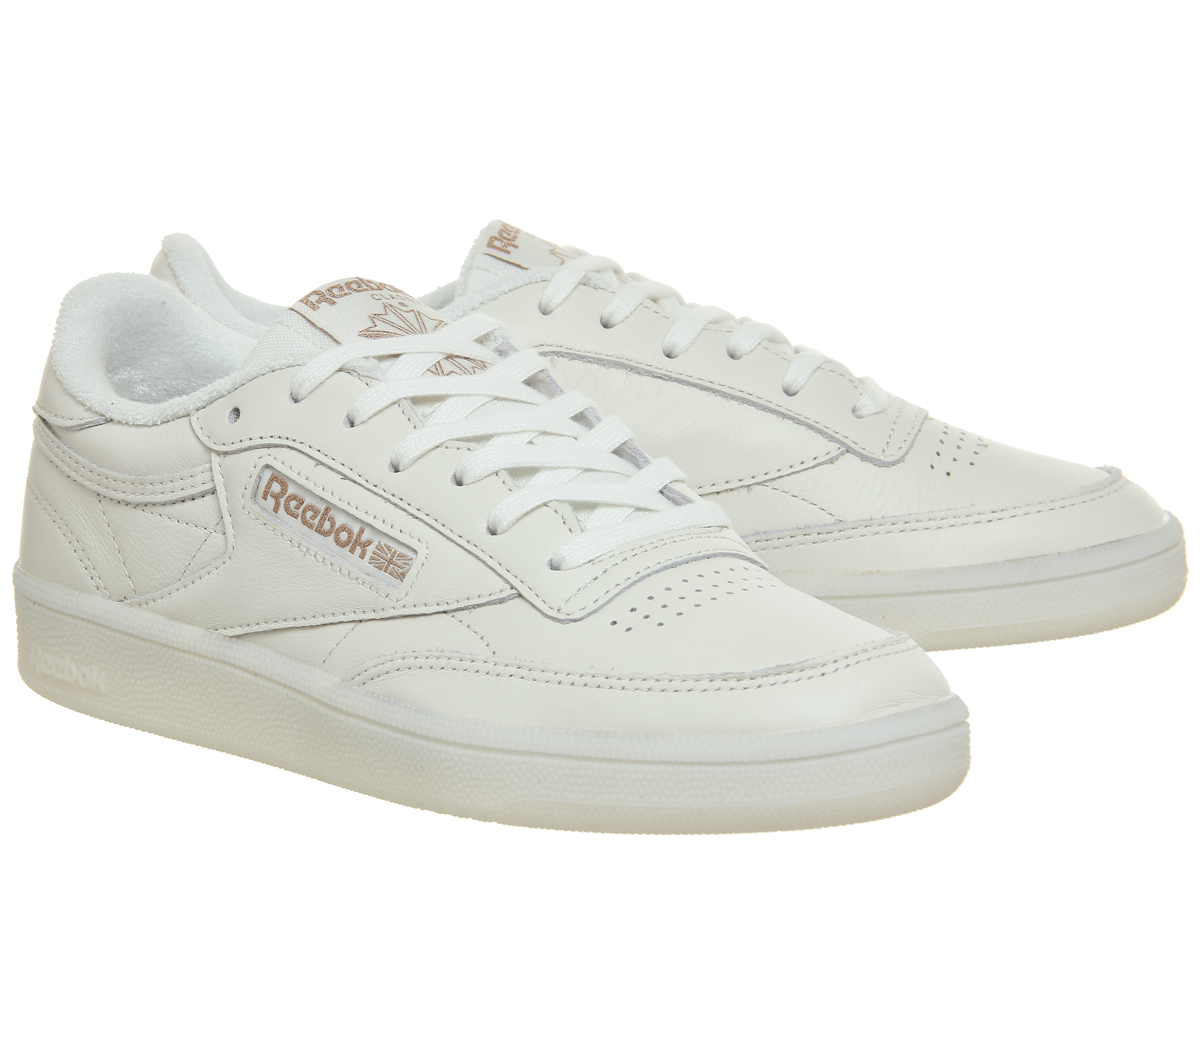 Haut femme Reebok Club C 85 Baskets Craie Or Rose Exclusive Trainers ... 2db7c5591